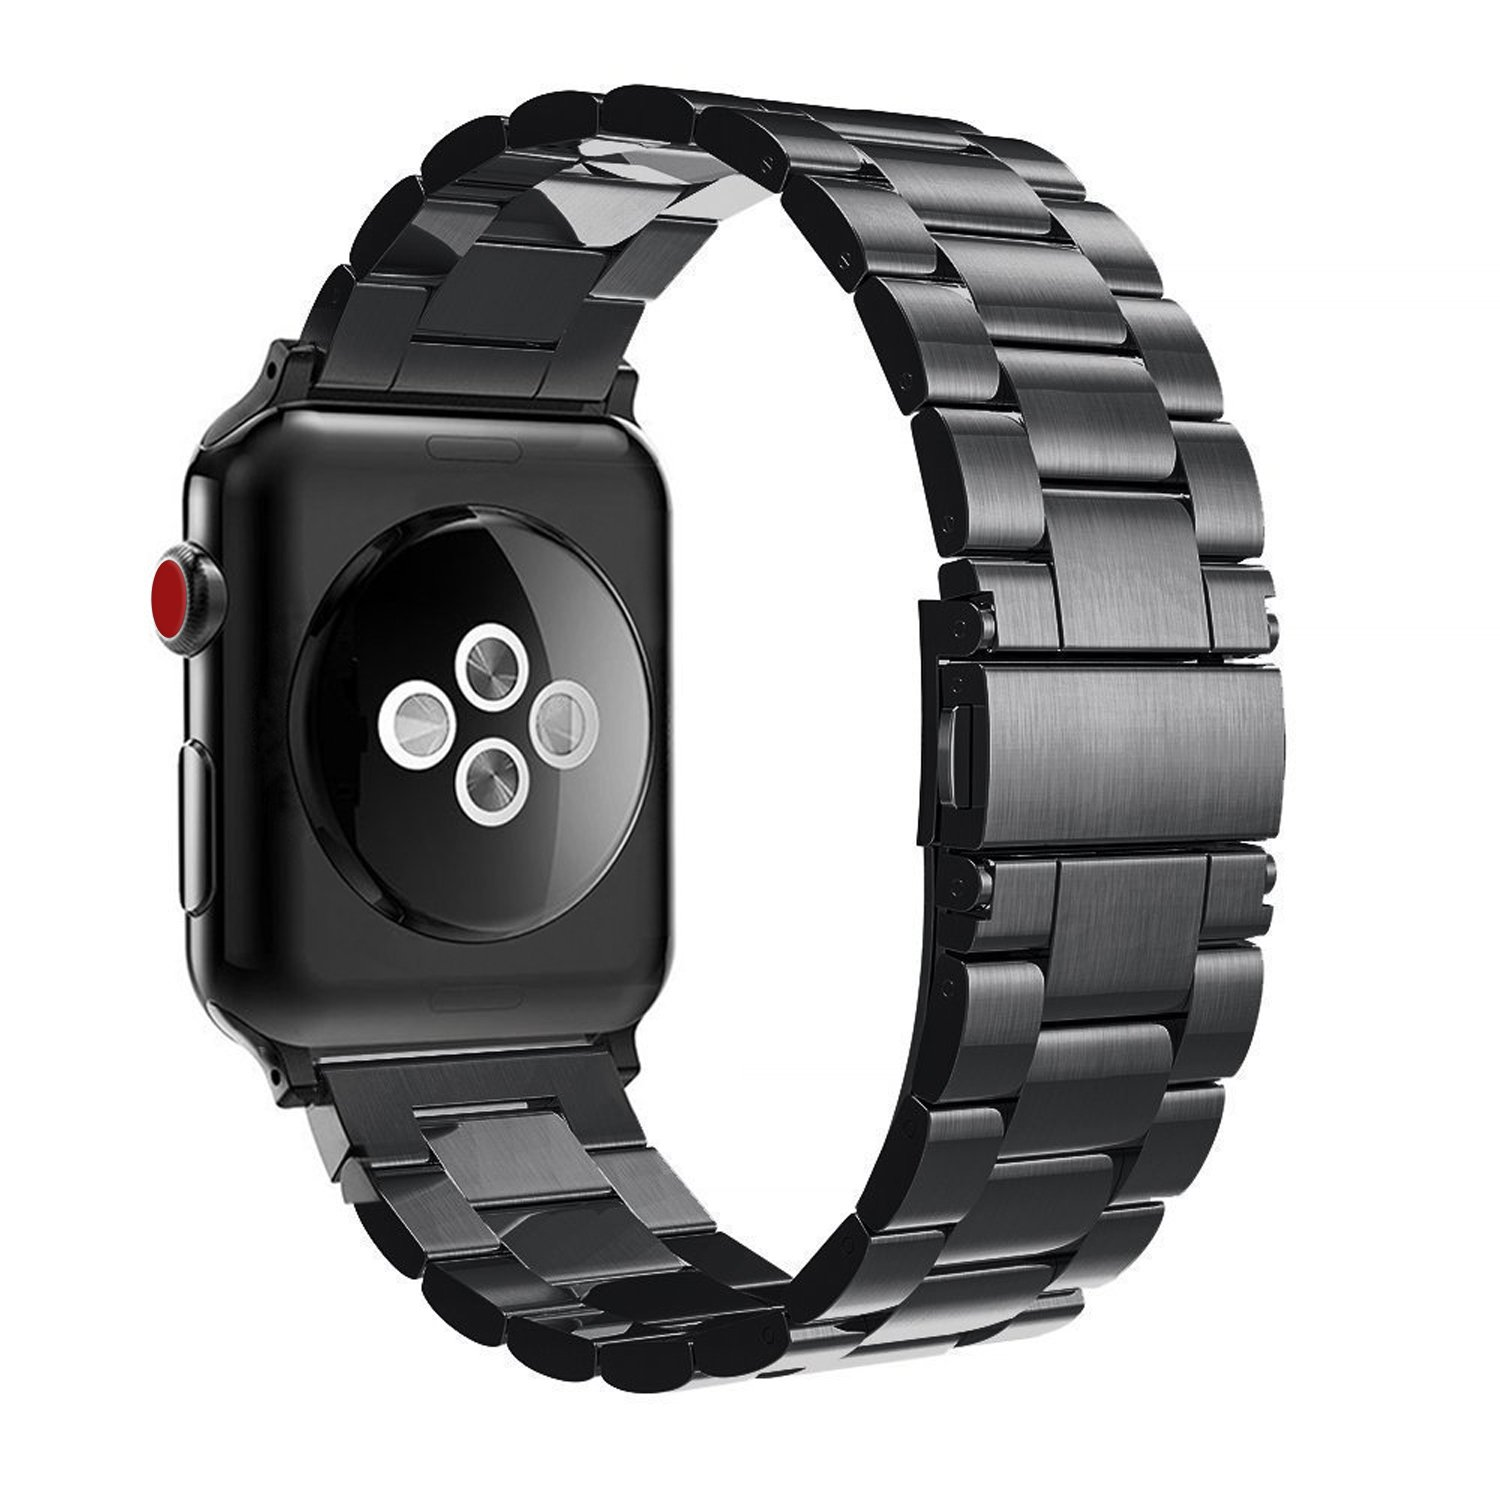 for Apple Watch Band 42mm, Fintie Solid Stainless Steel Metal Replacement Strap Bracelet Wrist Bands for Apple Watch Series 3 Series 2 Series 1 42mm All Models - Black